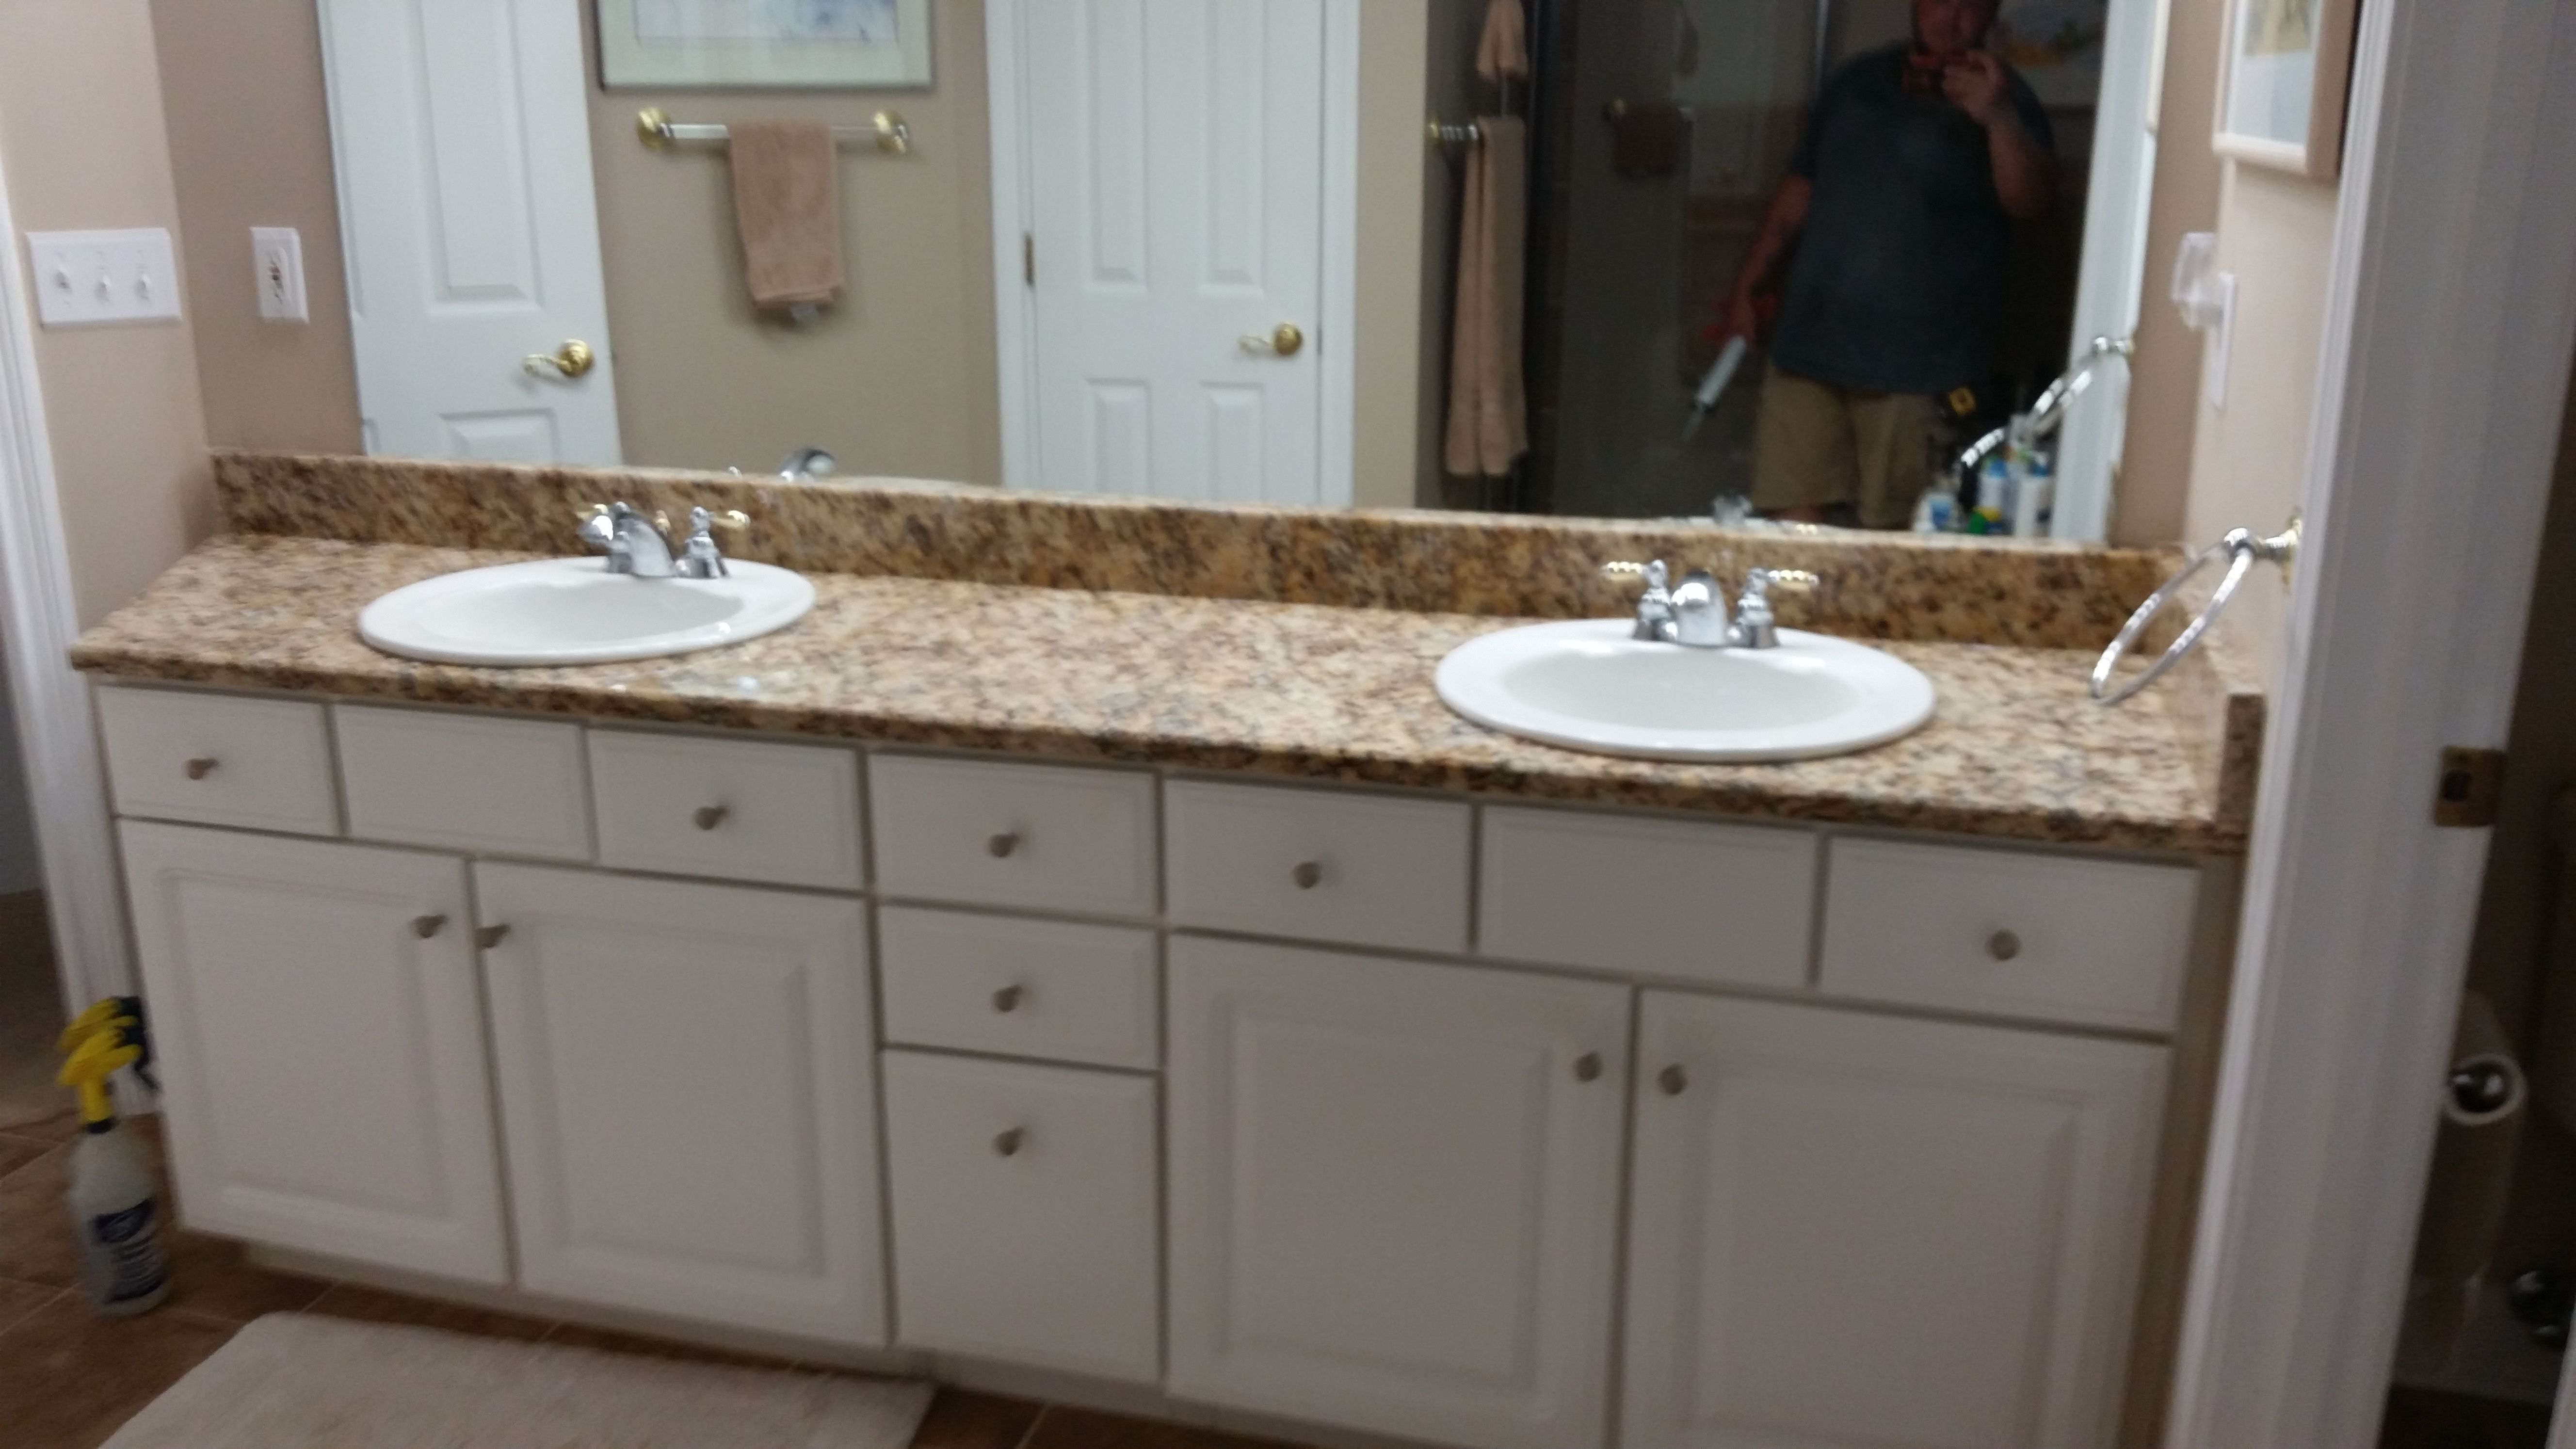 Giallo Napoli Granite Bathroom Vanity Install For The Ballard Family.  Knoxvilleu0027s Stone Interiors. Showroom Located At 3900 Middlebrook Pike,  Knoxvu2026